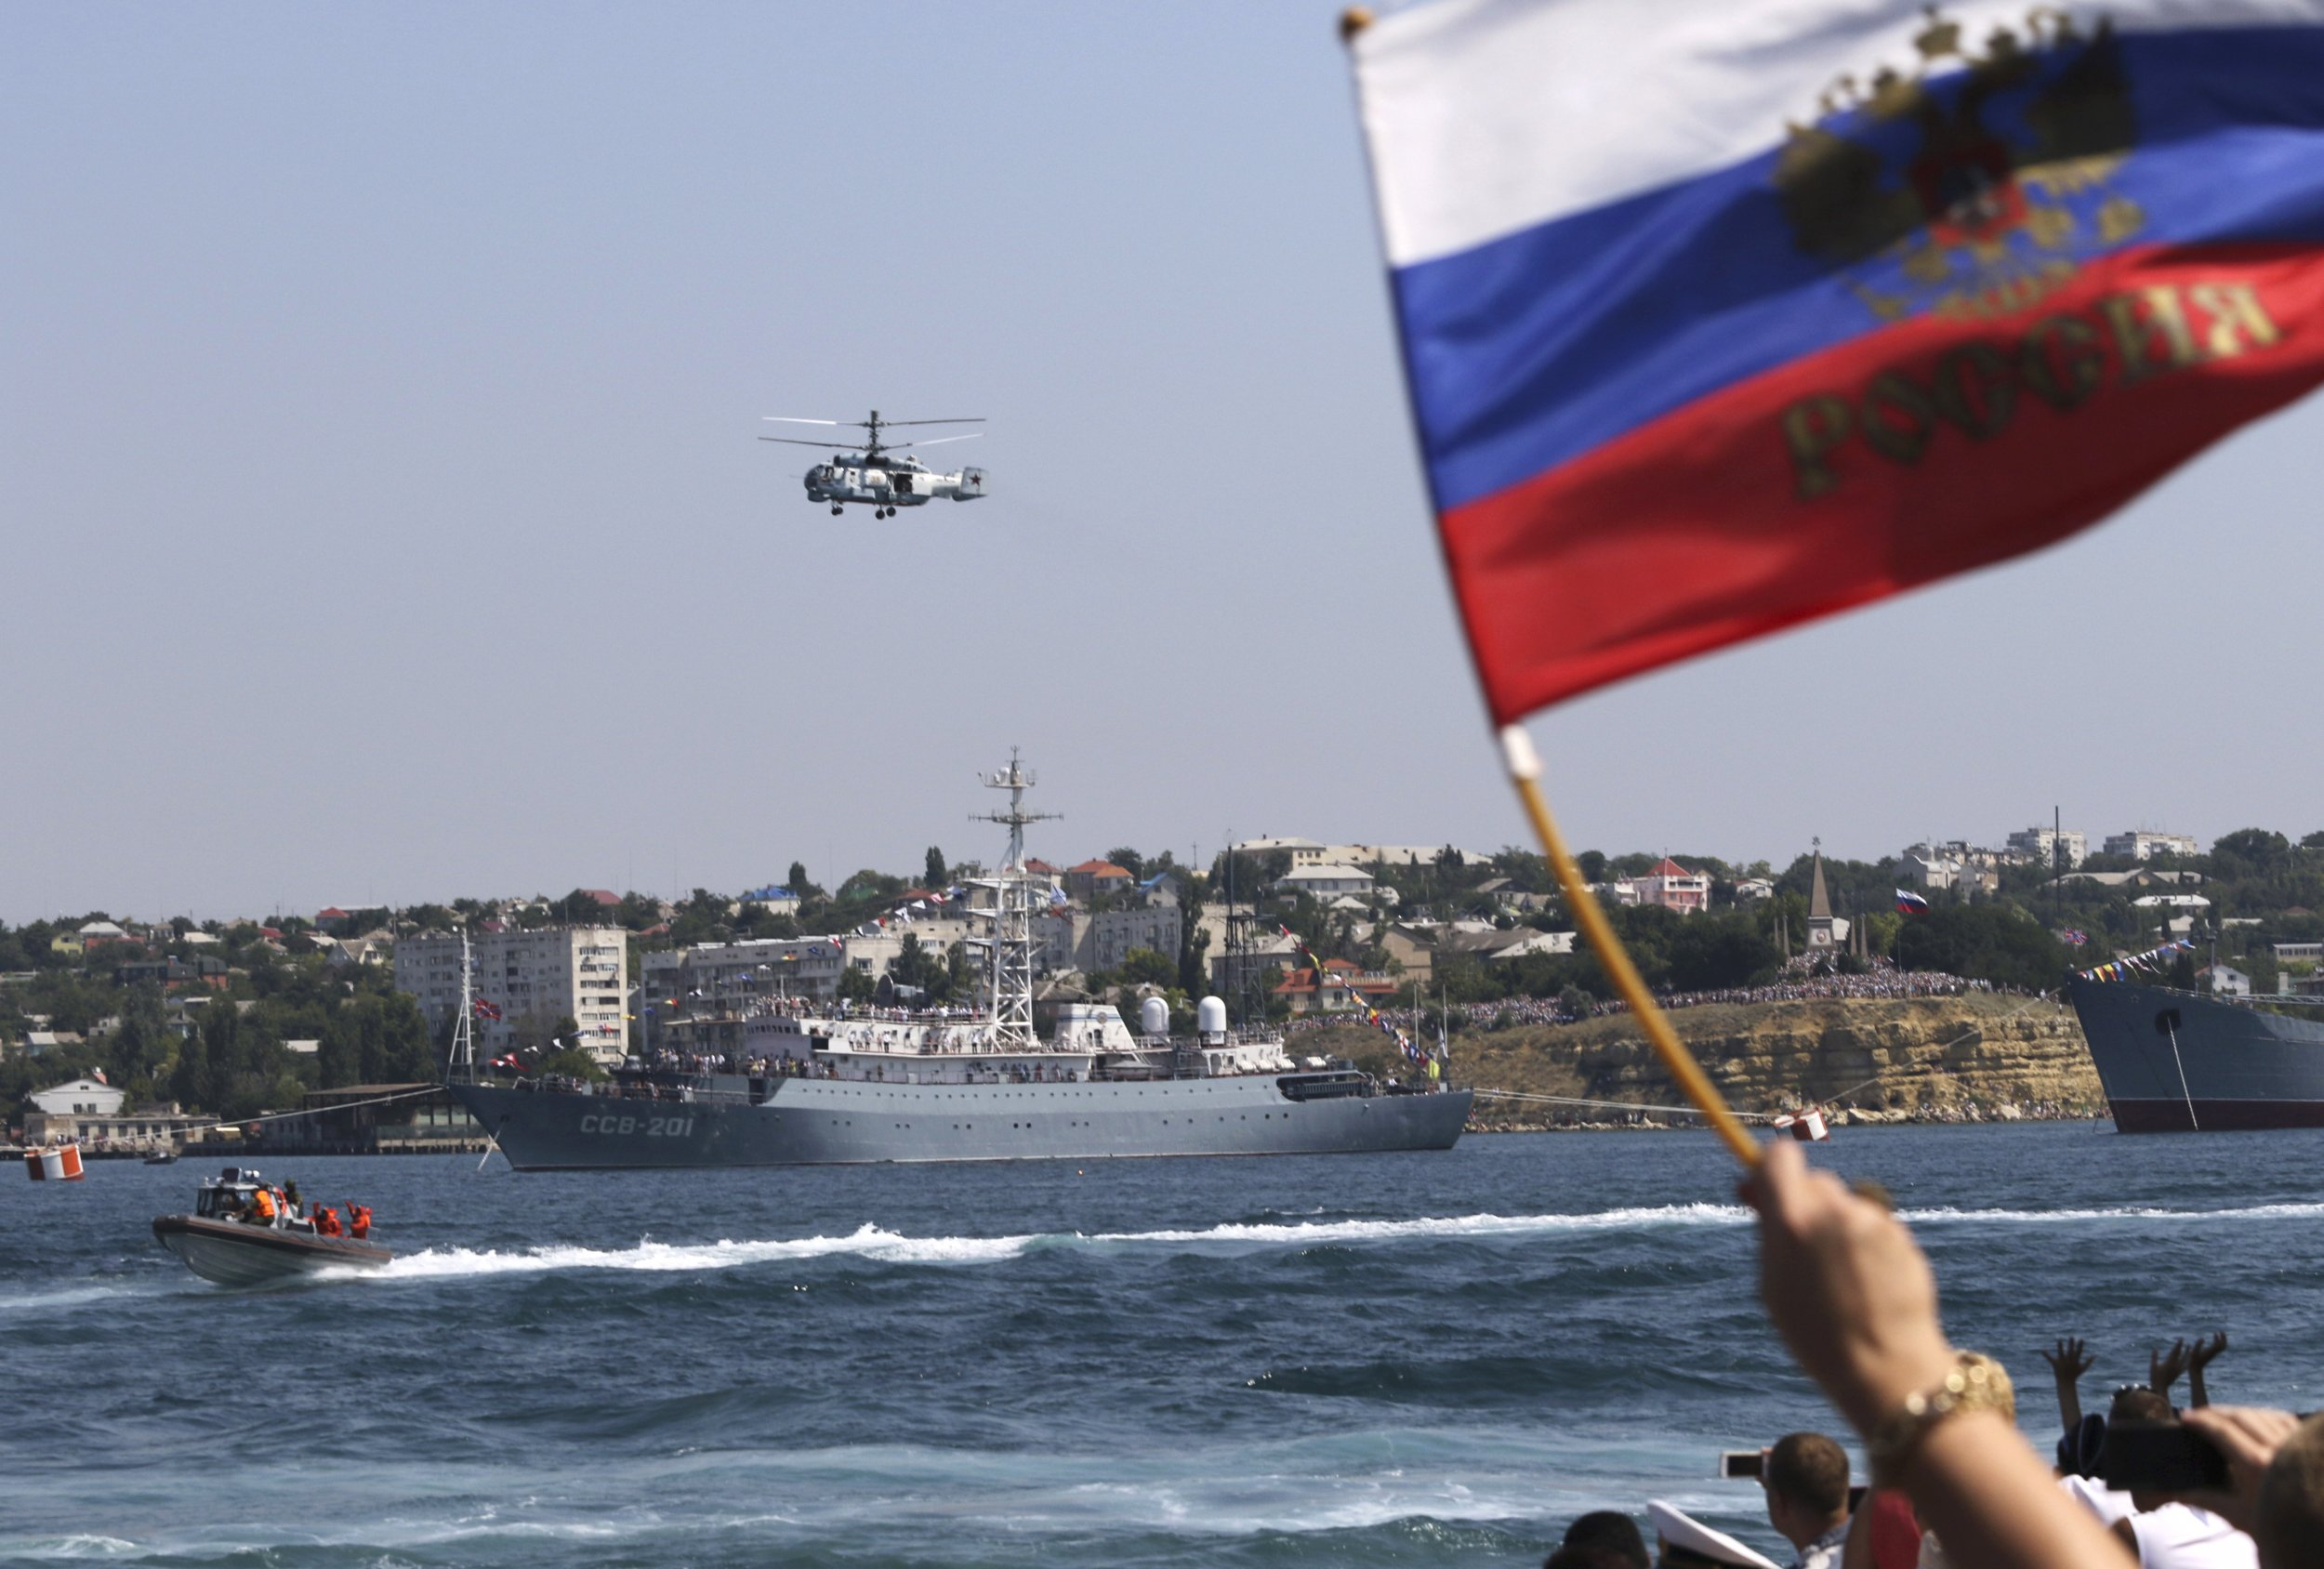 Russia's defense minister plots reinforcement in south, near Ukraine and Black Sea